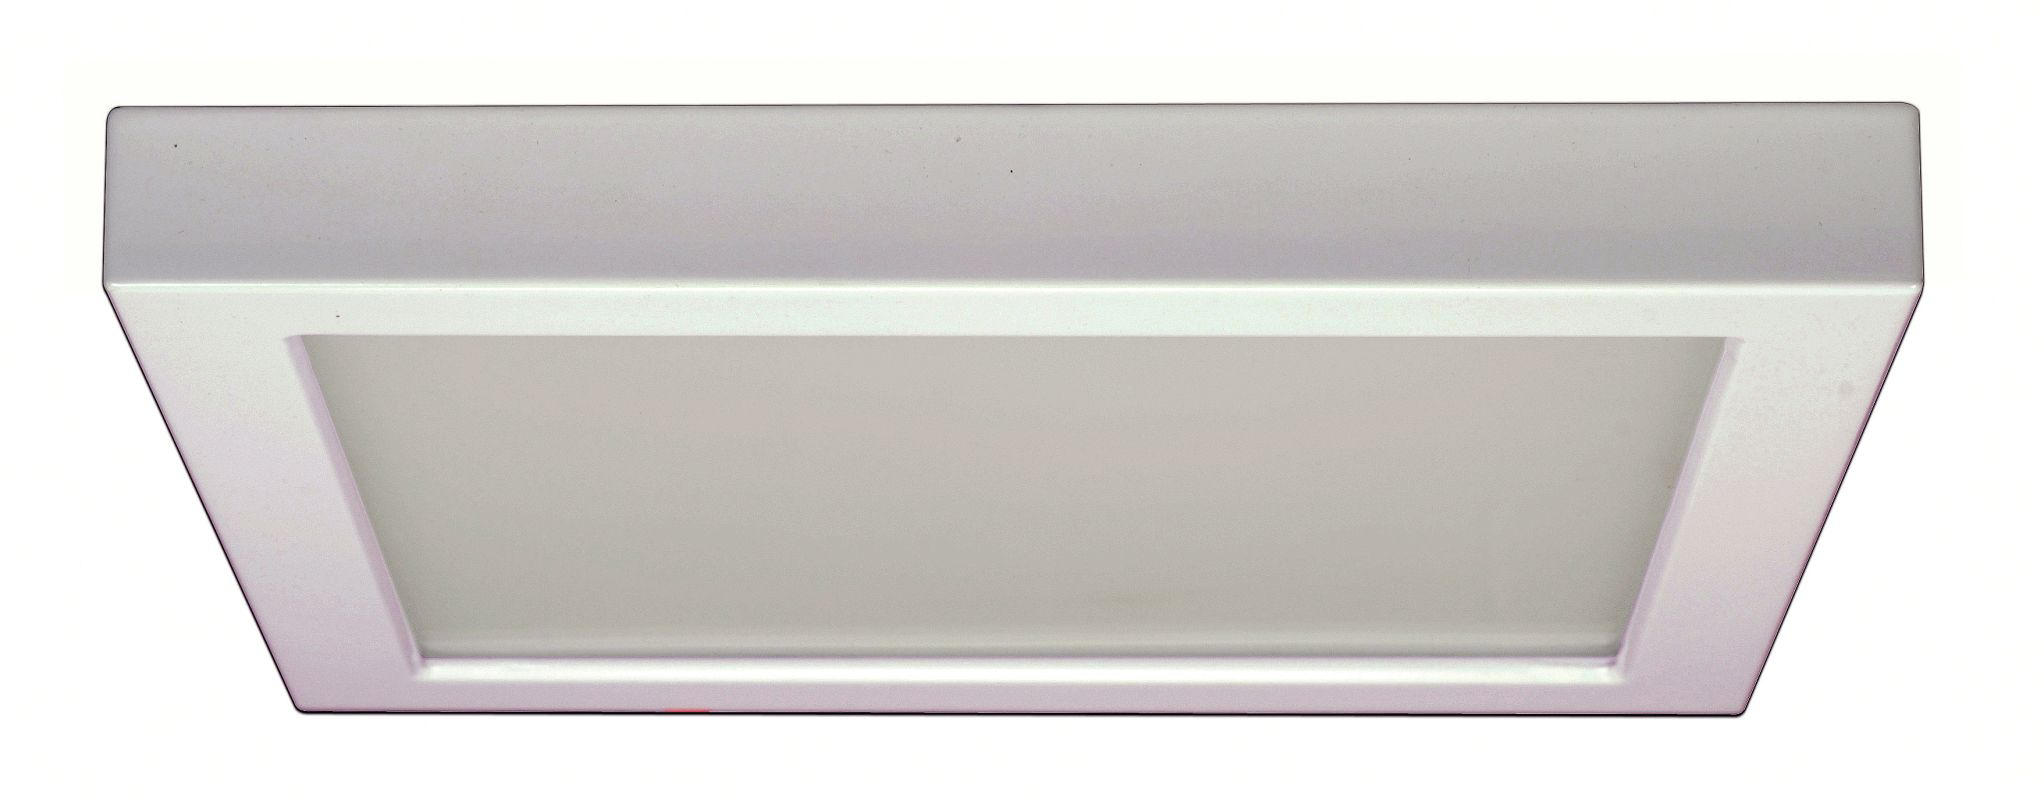 Nuvo Lighting S9340 Blink 1 Light LED Energy Star Flush Mount Ceiling